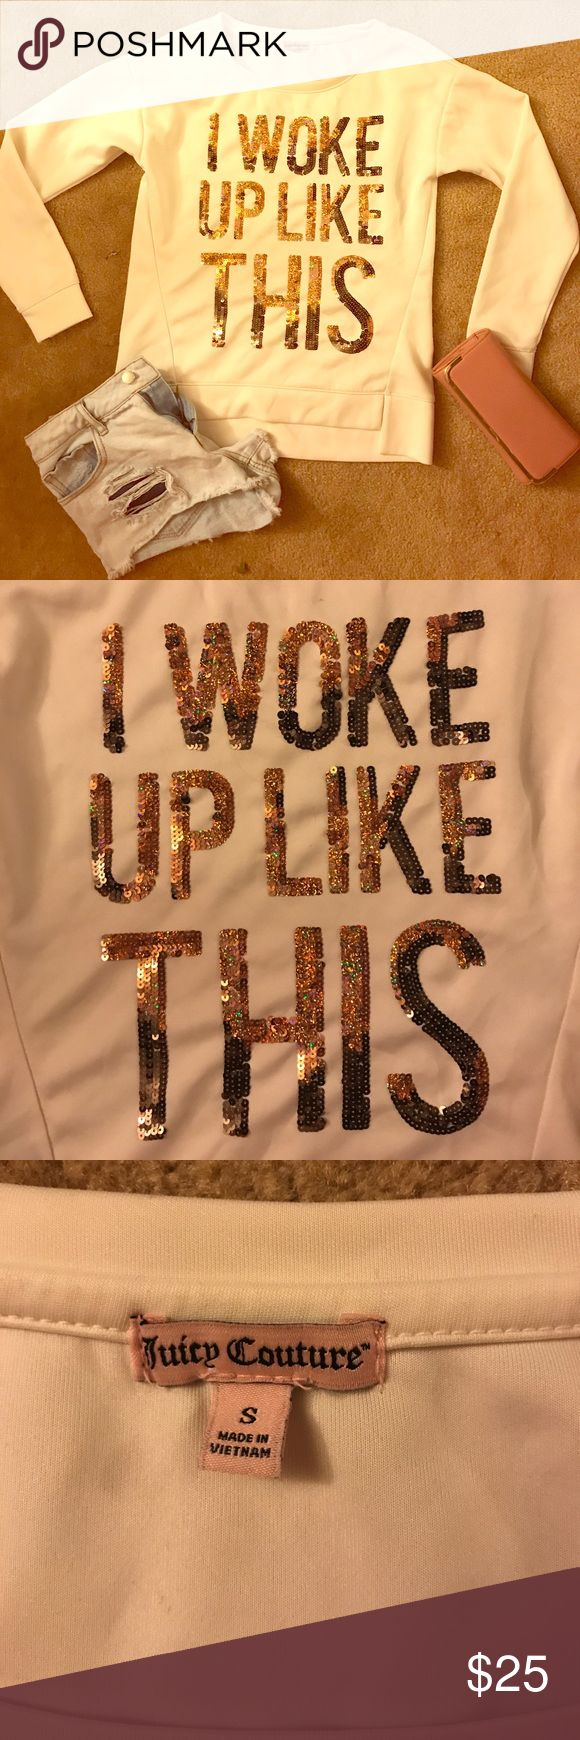 """Juicy Couture, """"I woke up like this"""" pullover 💕💎 Missing a few pieces of sequence here and there. Fabric in great condition! Juicy Couture Tops Tees - Long Sleeve"""